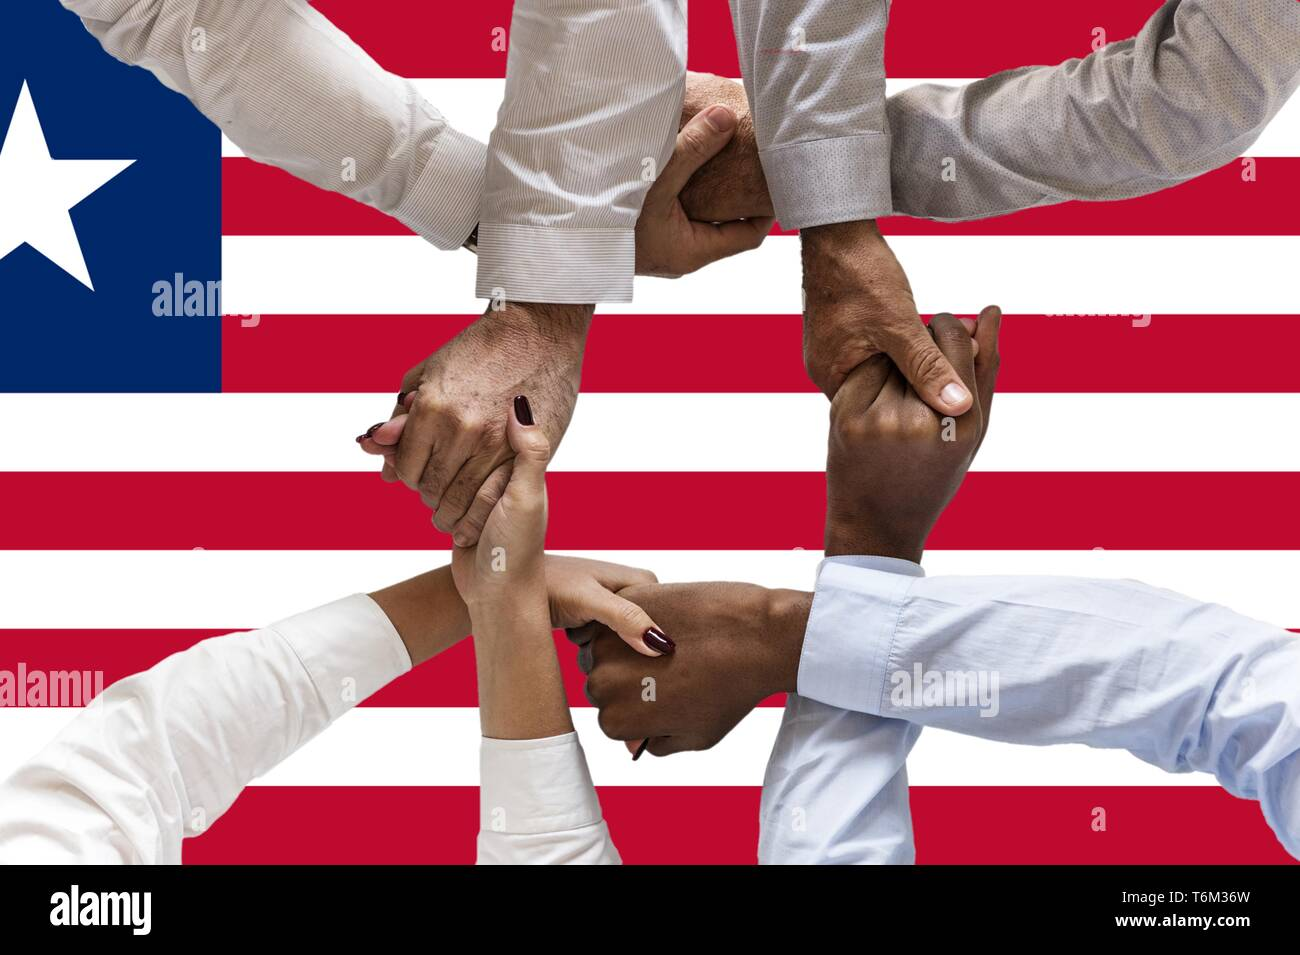 Flag of Liberia, intergration of a multicultural group of young people. - Stock Image